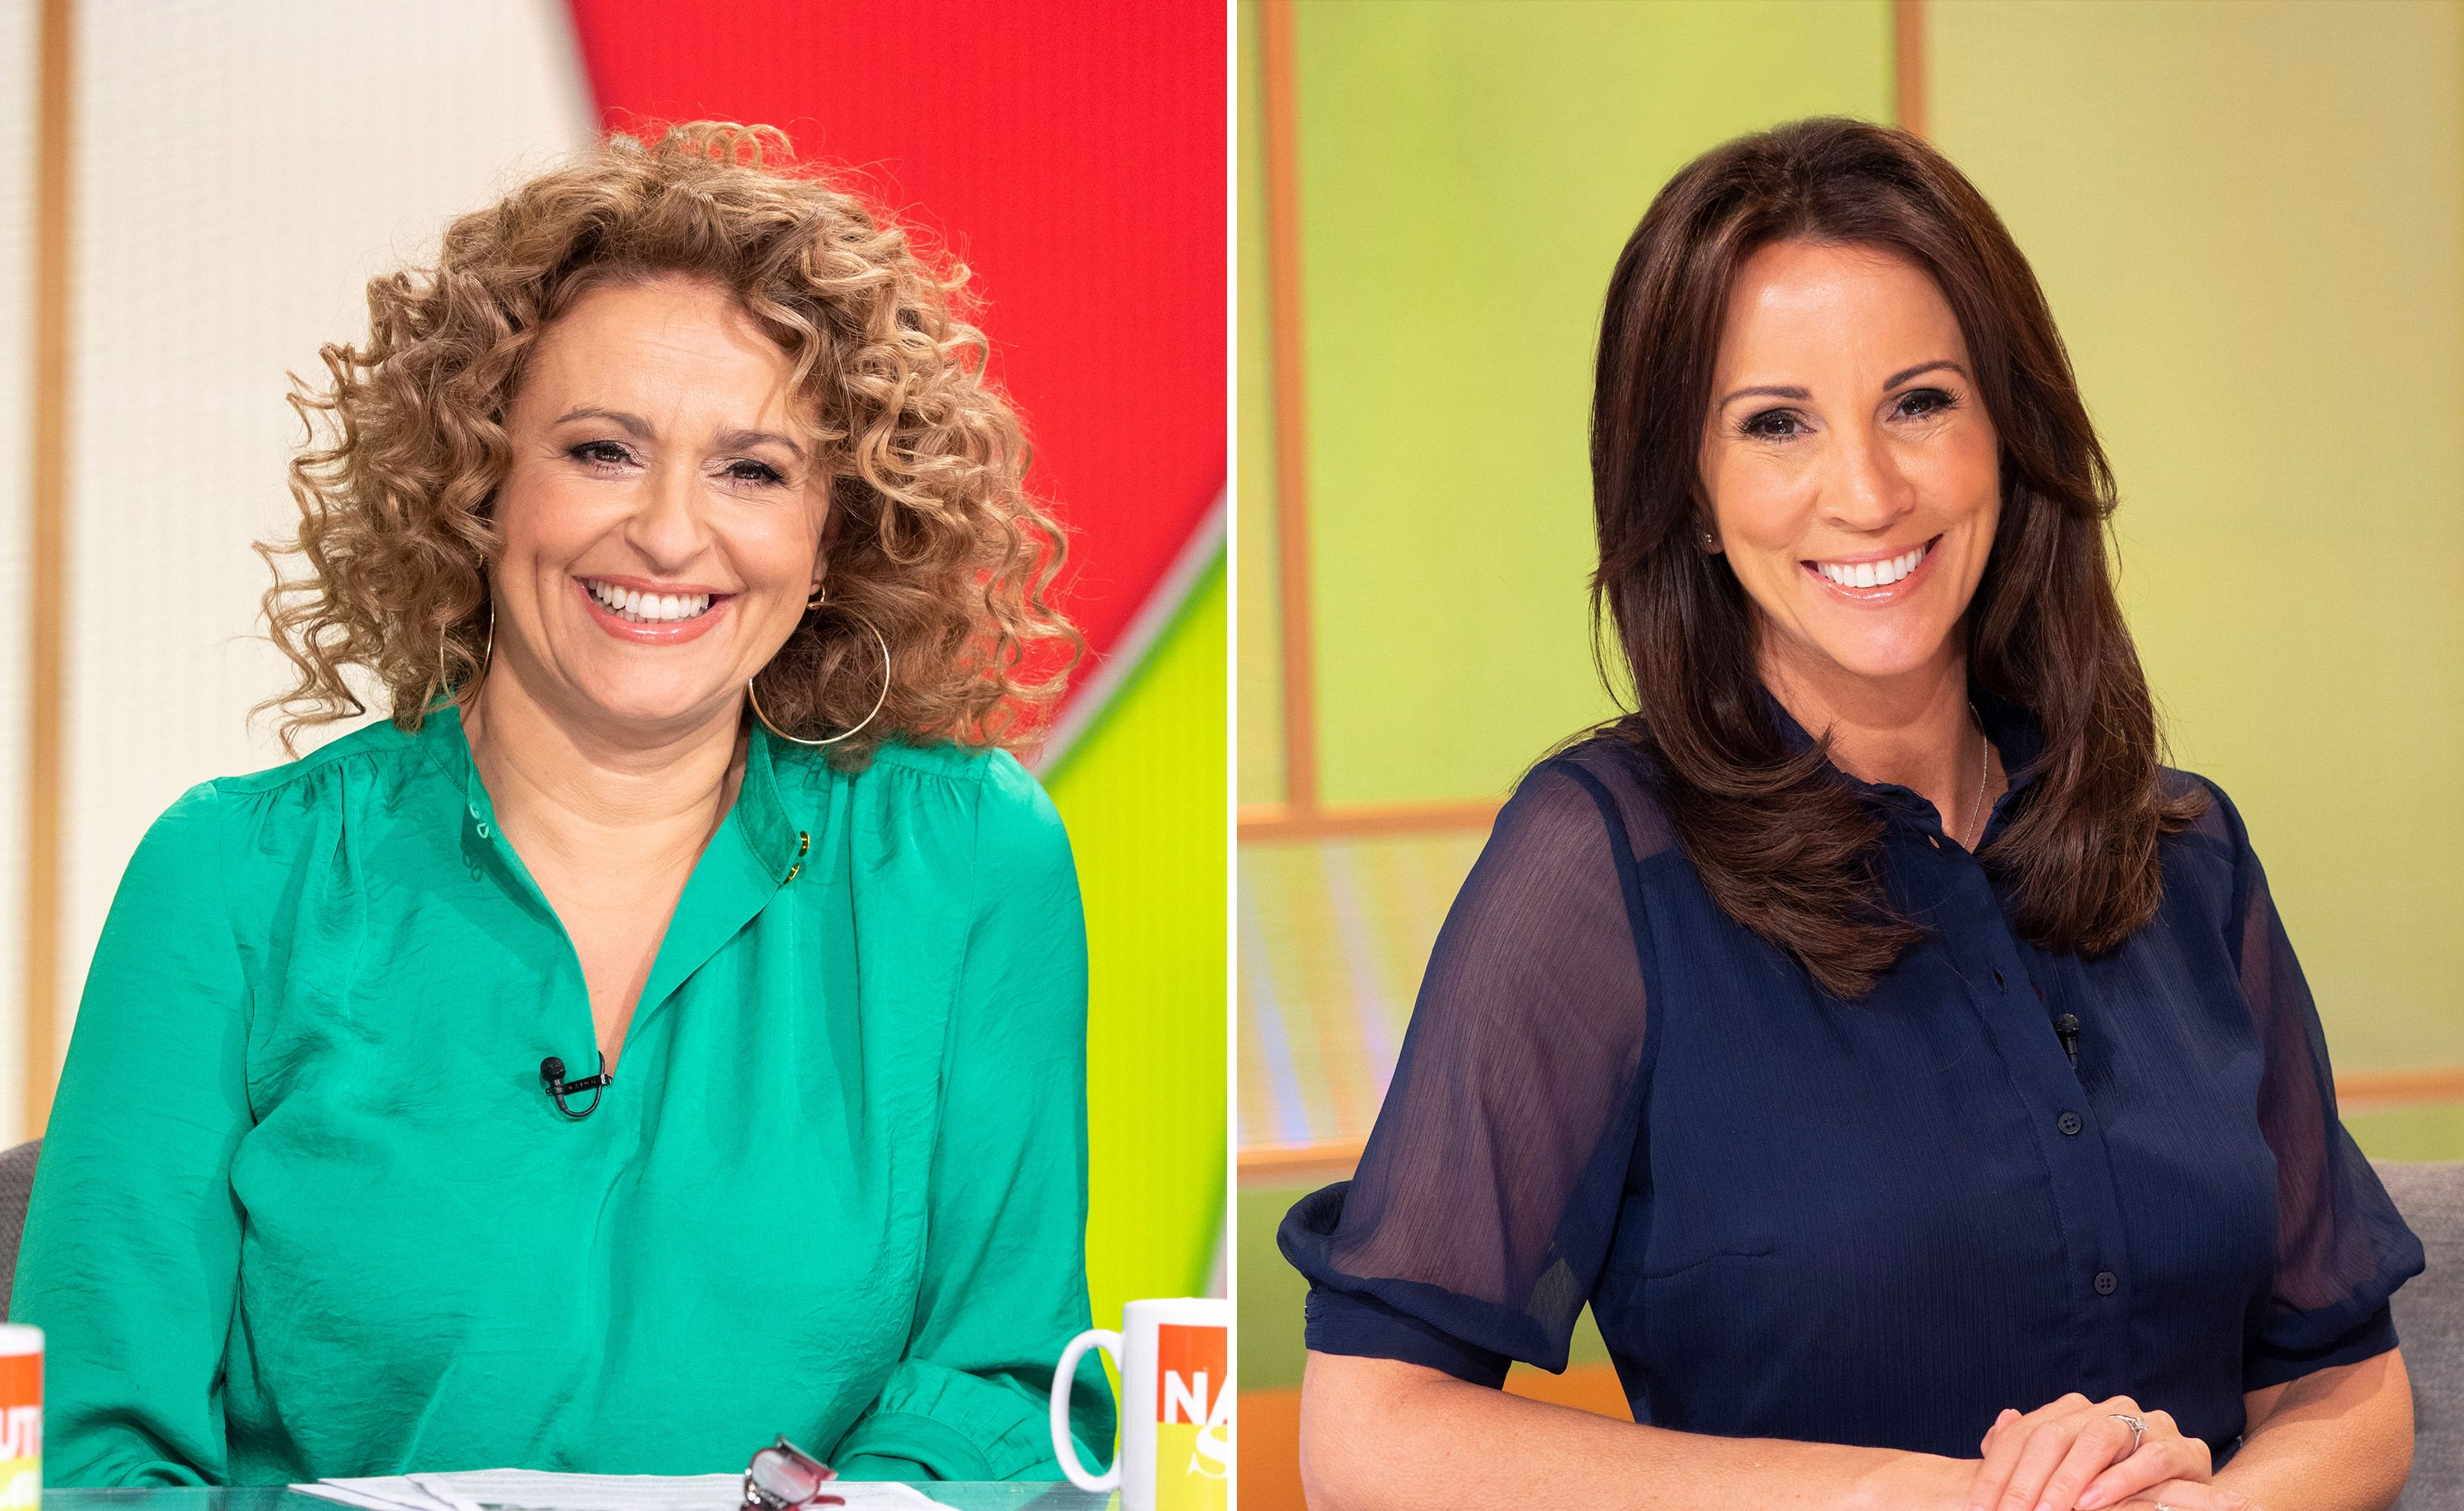 Nadia Sawalha And Loose Women Reveal Their Horrendous' Breastfeeding Experiences